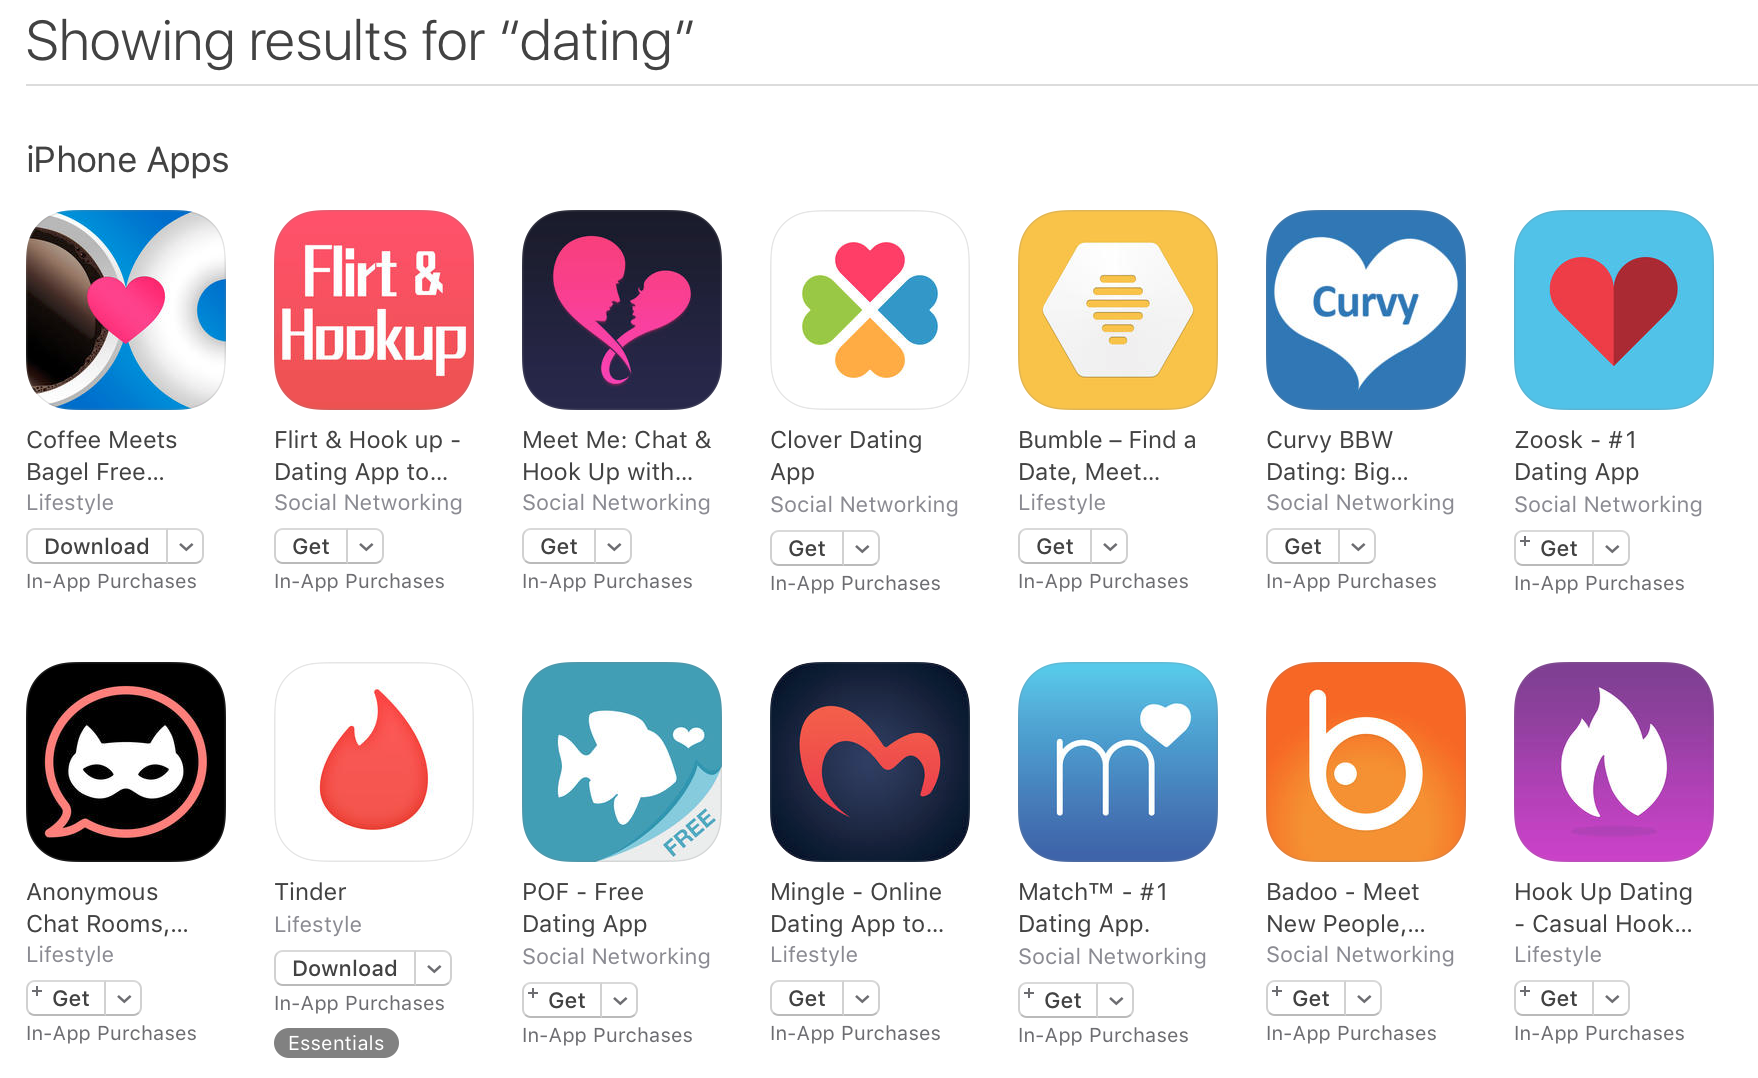 2018 popular dating apps 15 best free android apps of 2018 10 best texting apps and sms apps for android if we missed any of the best dating apps for android, tell us about them in the comments.